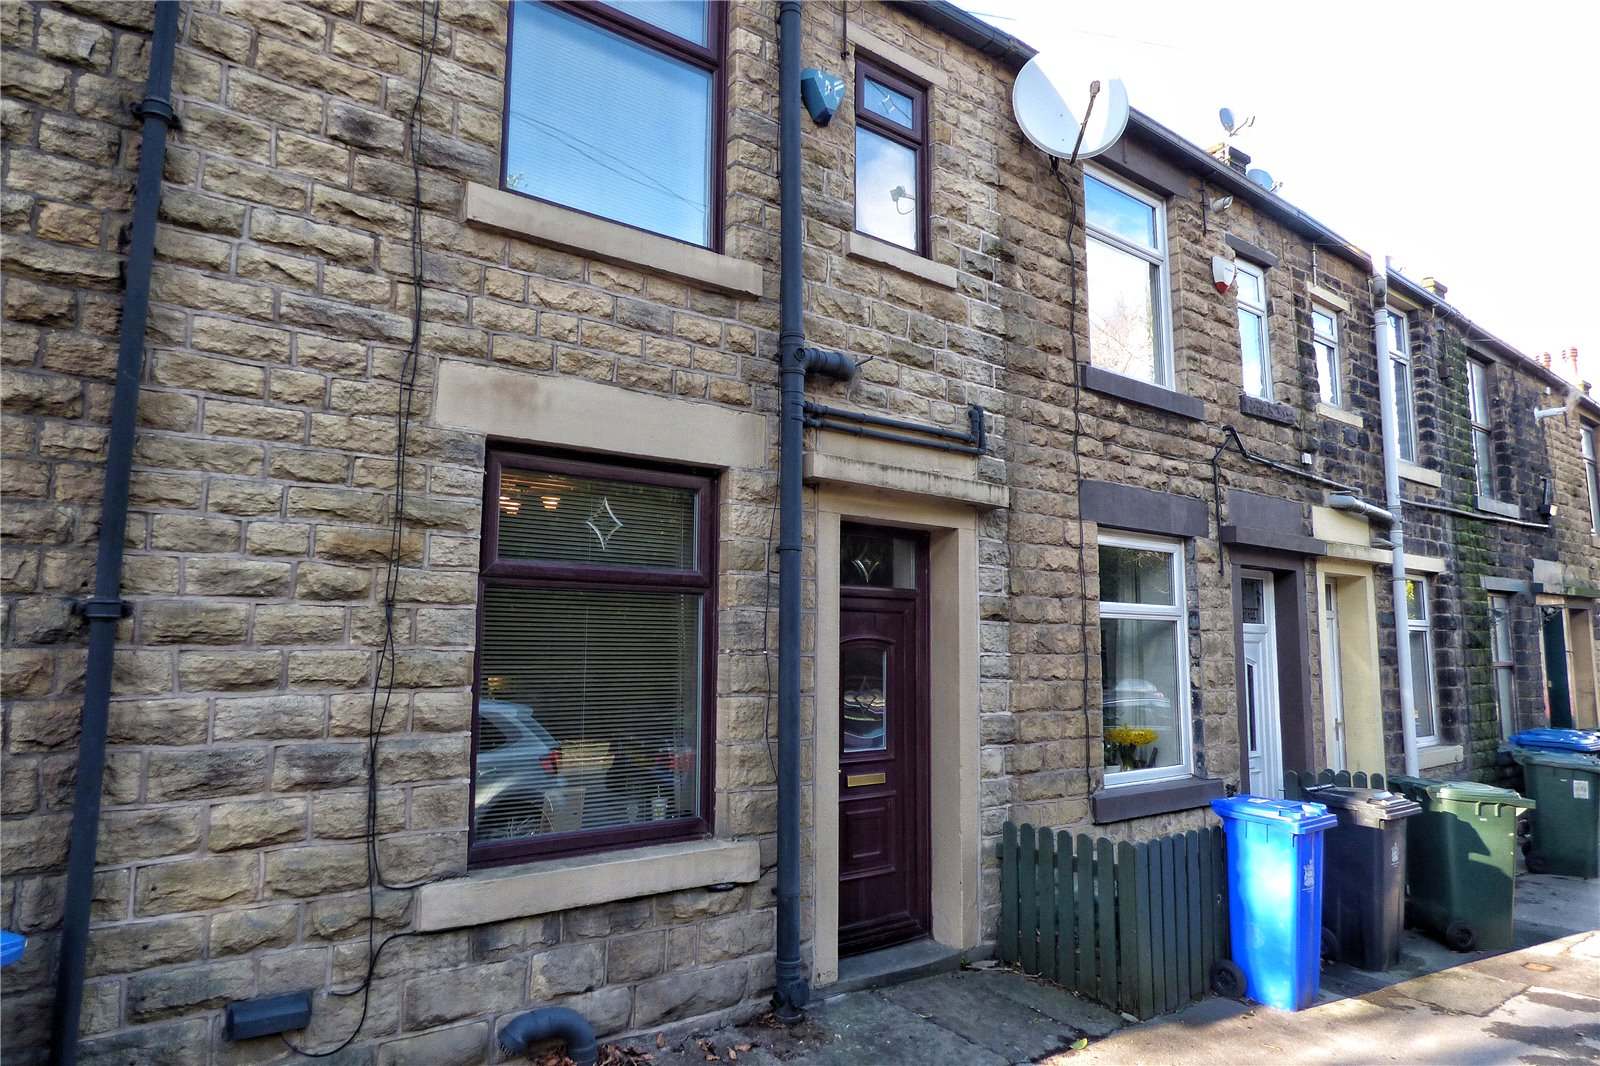 2 Bedrooms Terraced House for sale in Market Street, Whitworth, Rochdale, OL12